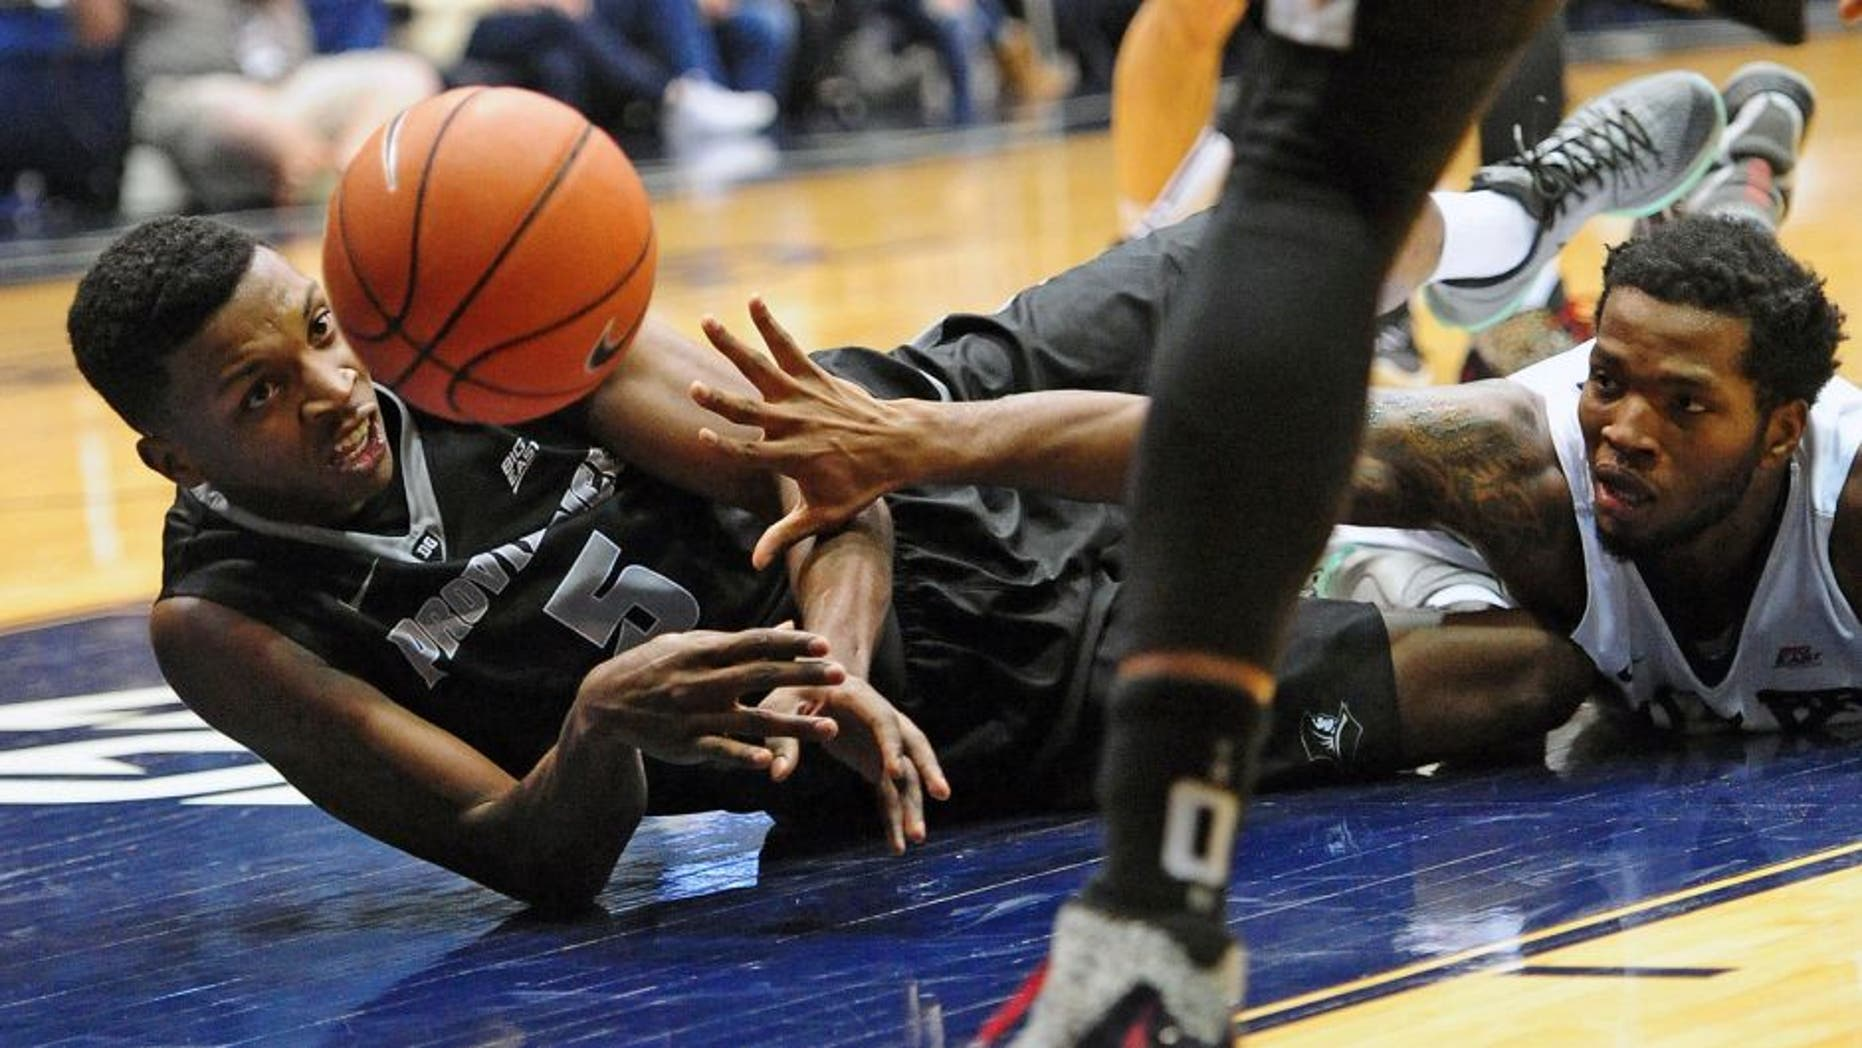 Dec 31, 2015; Indianapolis, IN, USA; Providence College Friars forward Rodney Bullock(5) and Butler University Bulldogs forward Tyler Wideman (4) battle for the ball at Hinkle Fieldhouse. Mandatory Credit: Thomas Joseph-USA TODAY Sports